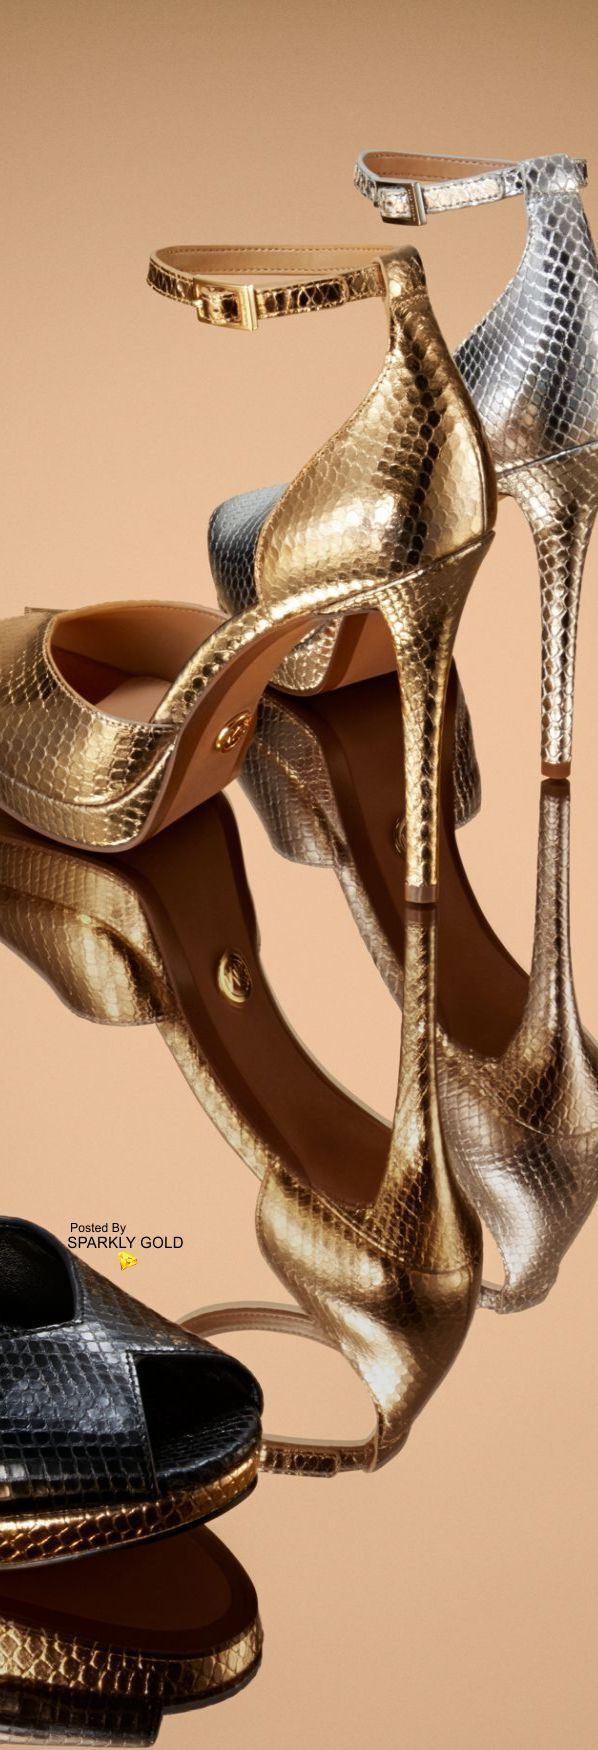 70c30fdec86f Michael Kors Tiegan Sandal - Sale! Up to 75% OFF! Shop at Stylizio for  women s and men s designer handbags